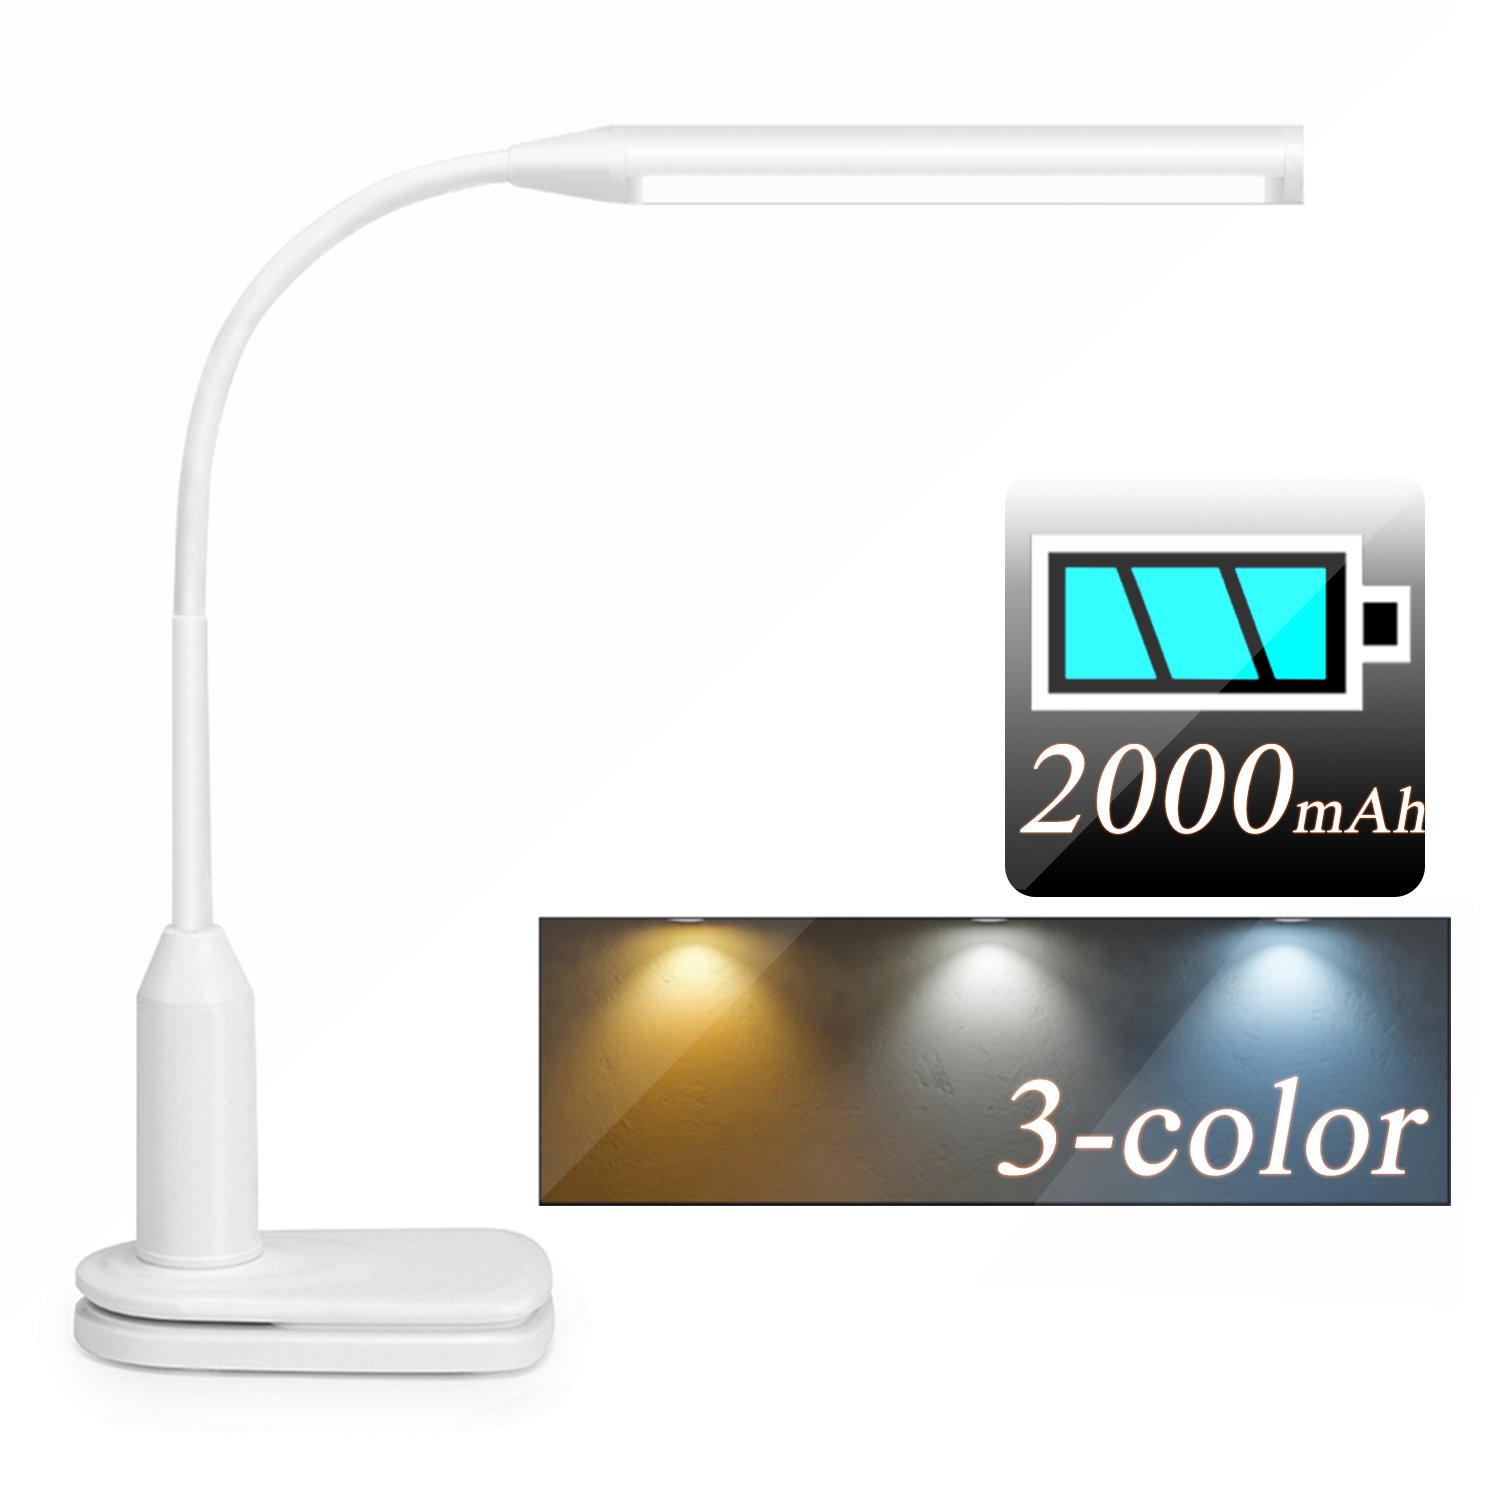 Rechargeable LED Desk Lamp with Clamp, Flexible Clip on Desk Light with Battery, 3 Lighting Modes, Stepless Dimmable, Touch Control, Eye-caring Reading Lamp for Offices Student Bed Work, 6W